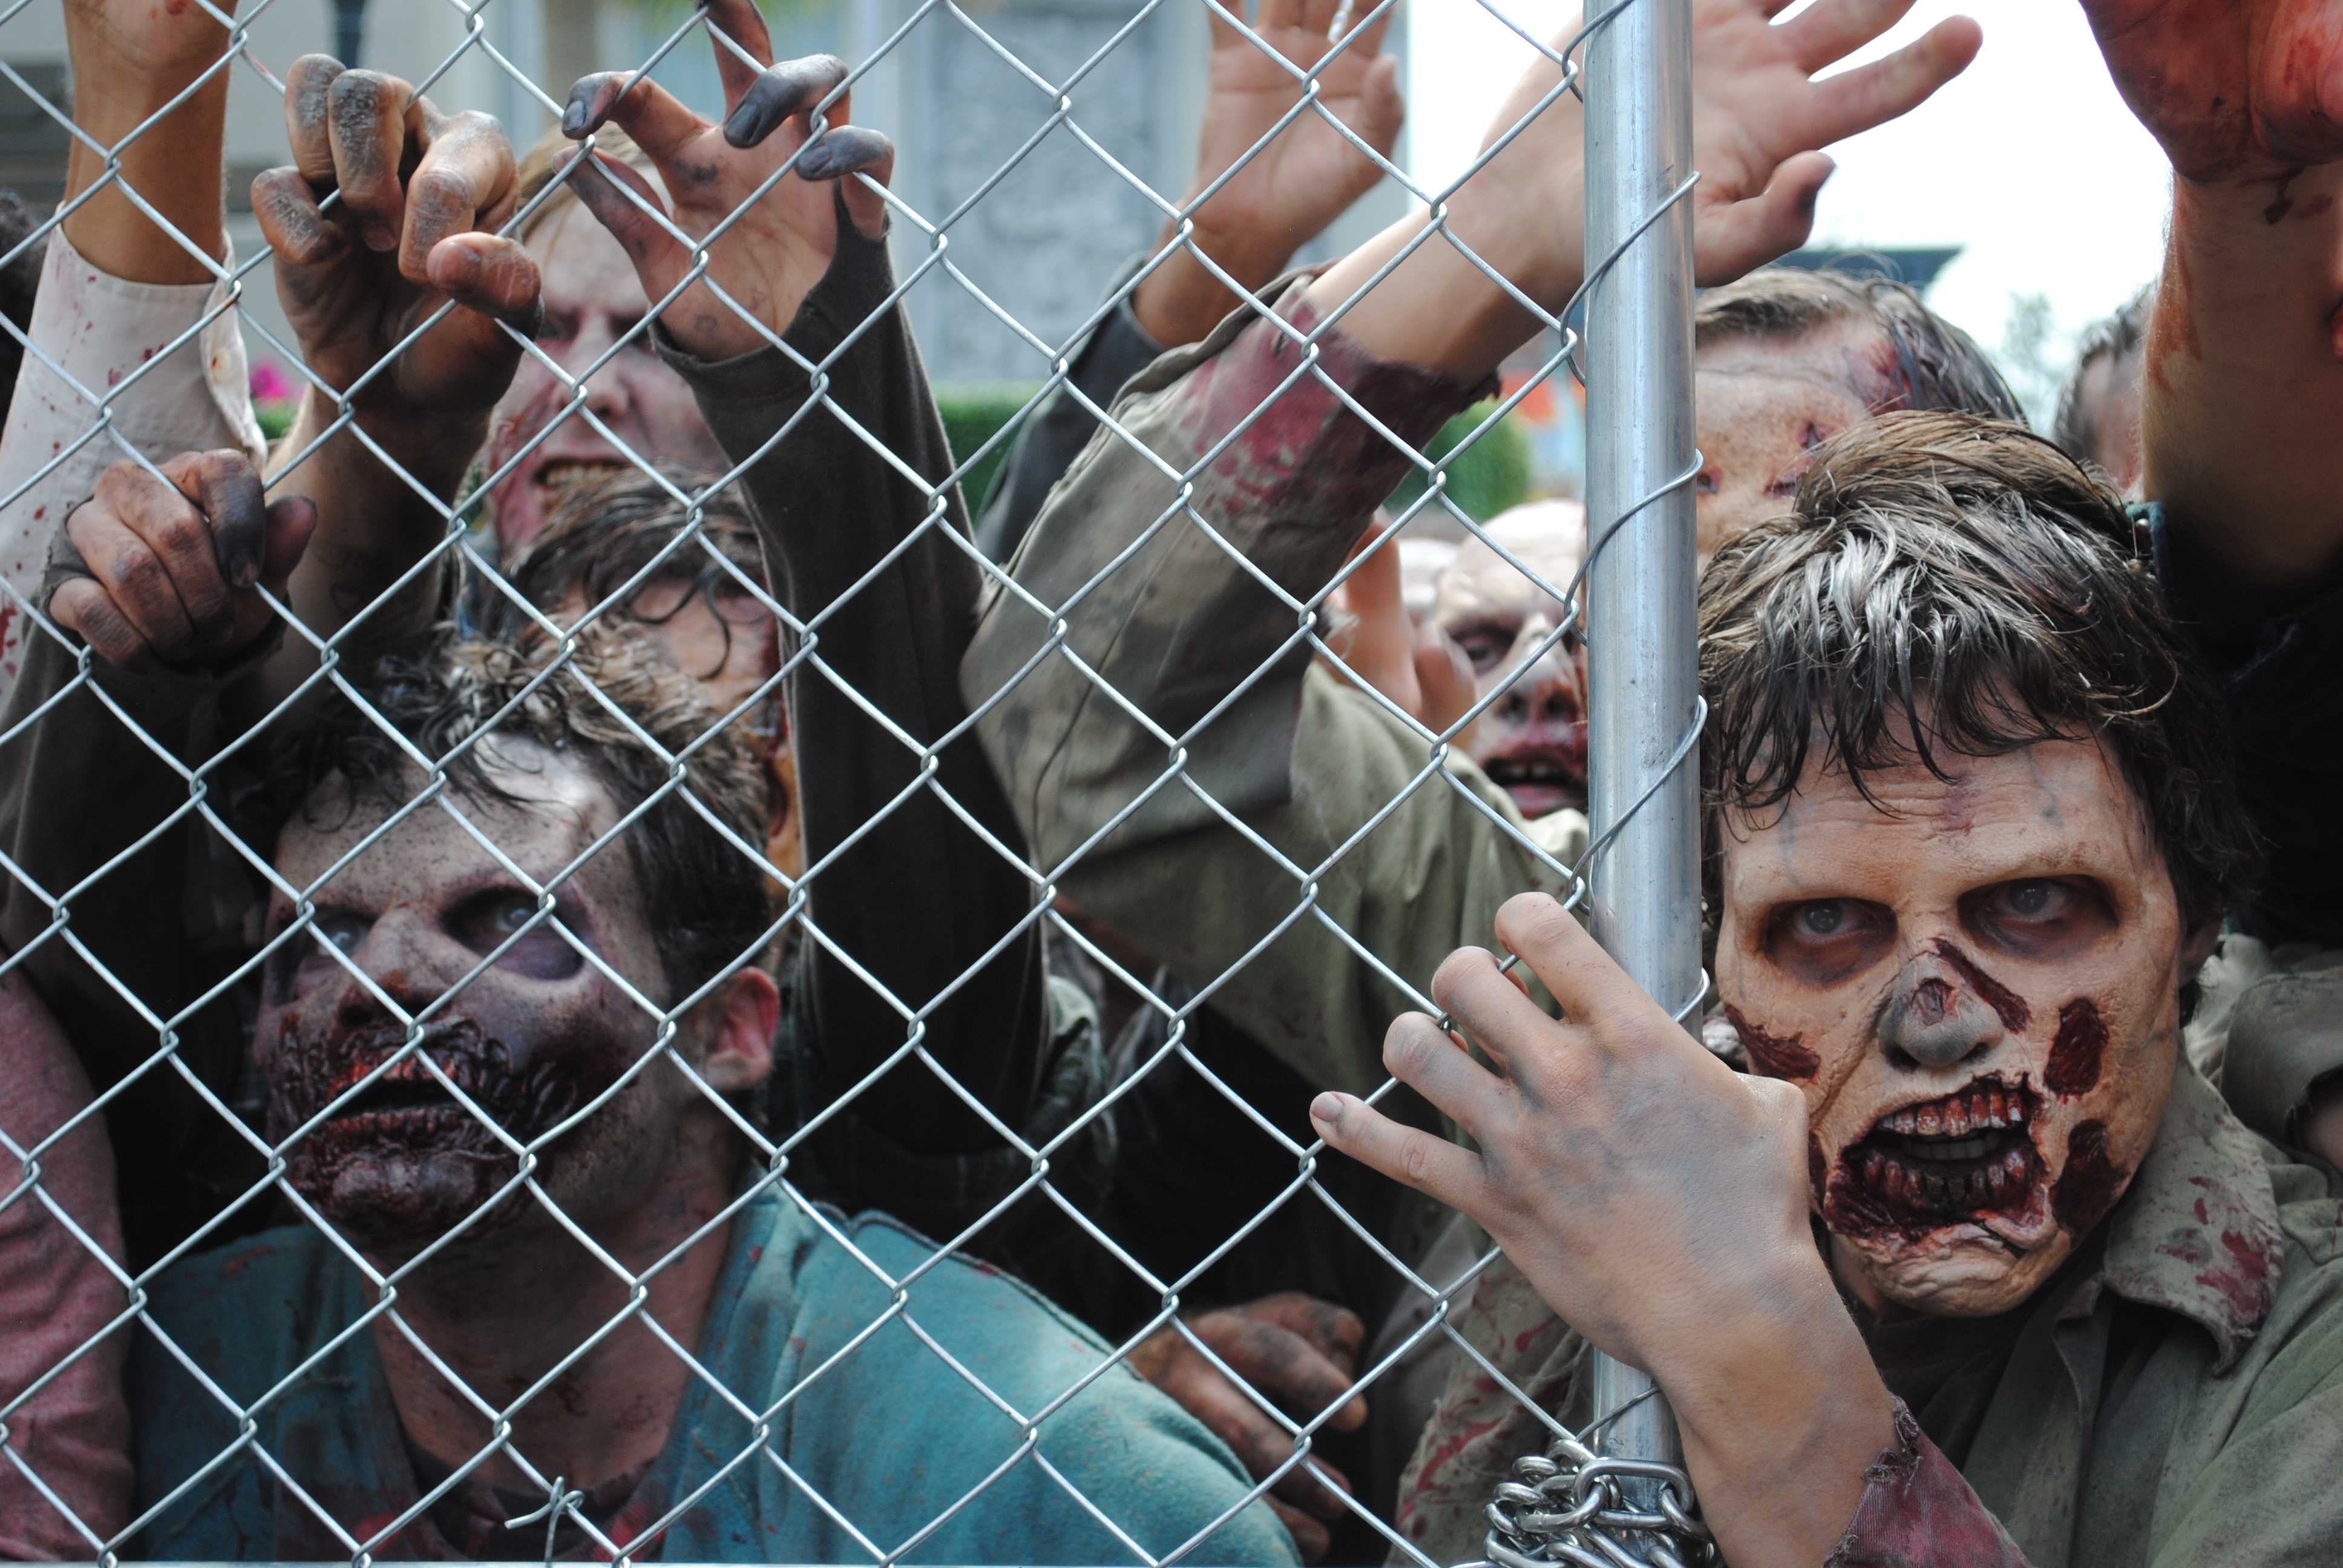 'Walking Dead' attraction brings TV horror to life